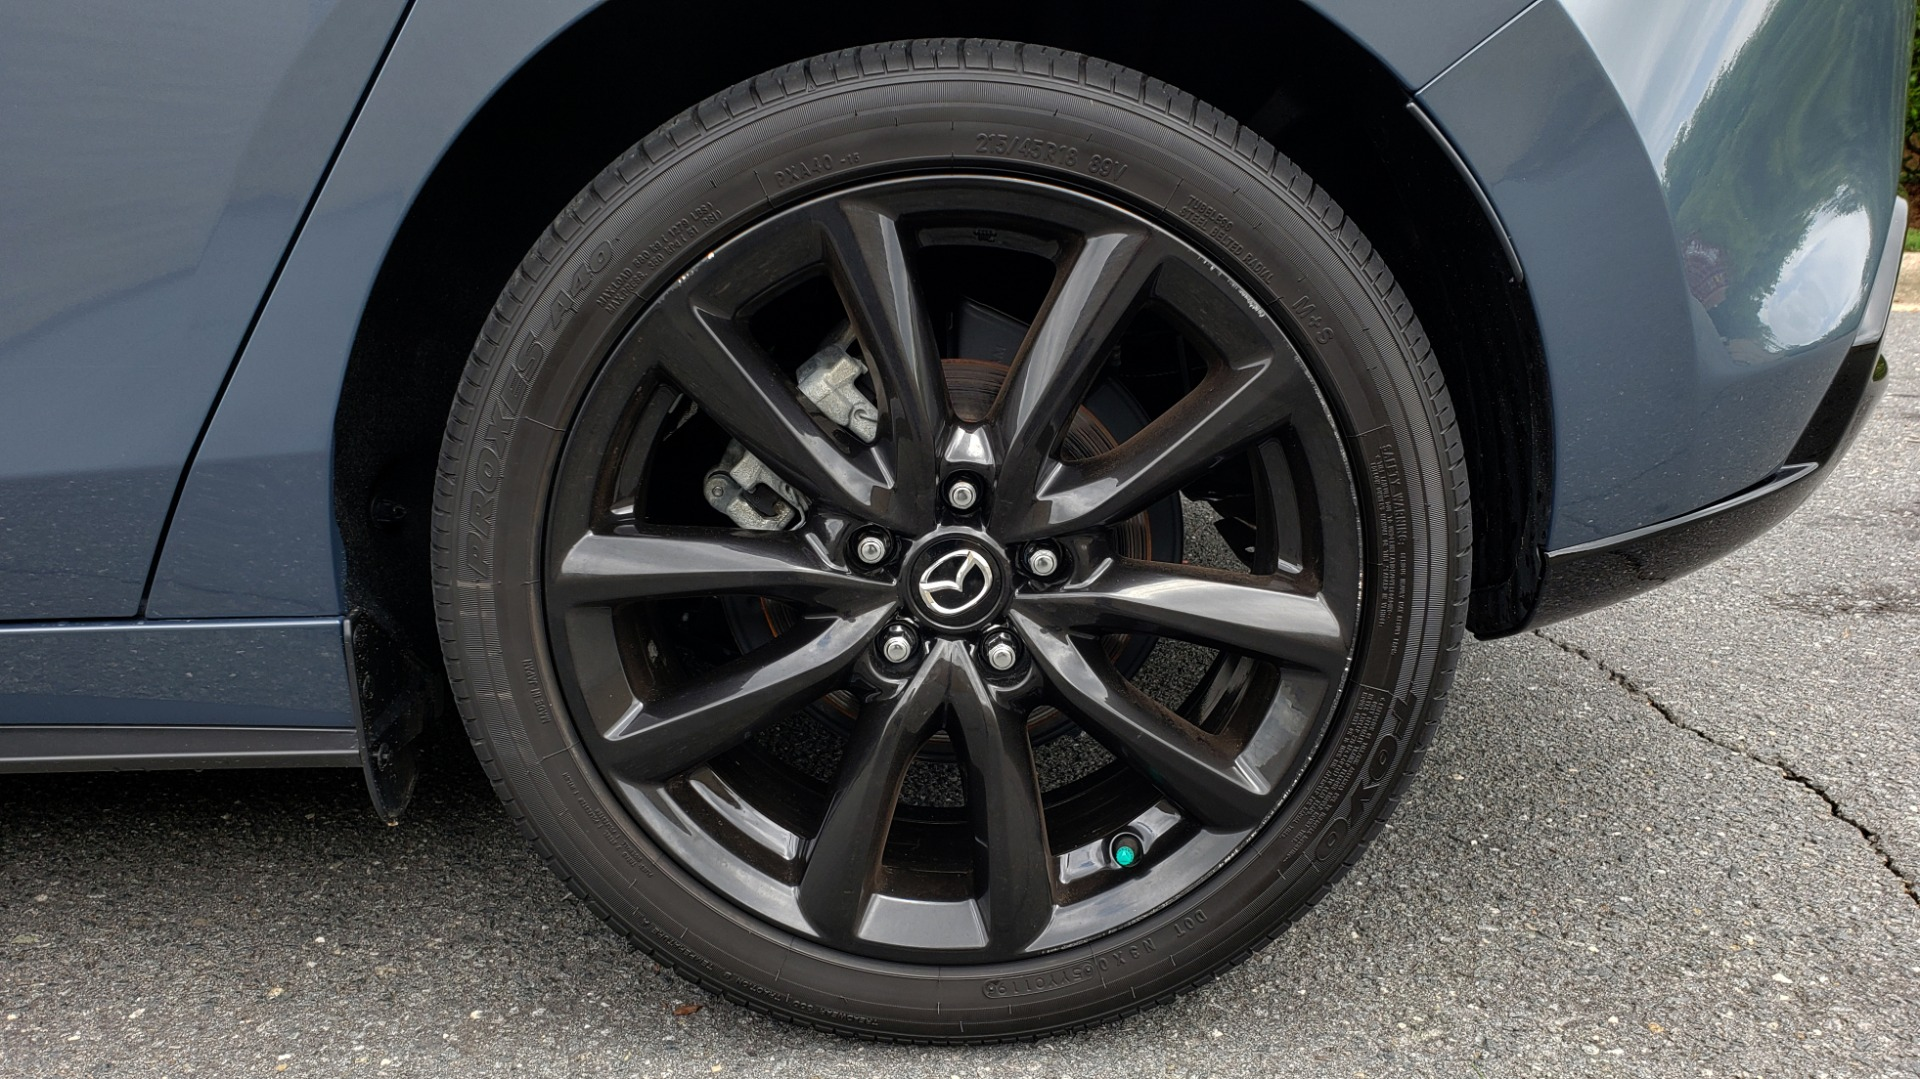 Used 2019 Mazda MAZDA3 HATCHBACK PREMIUM PKG / AUTO / 18IN BLACK ALLOY WHEELS / BOSE / LEATHER for sale Sold at Formula Imports in Charlotte NC 28227 71